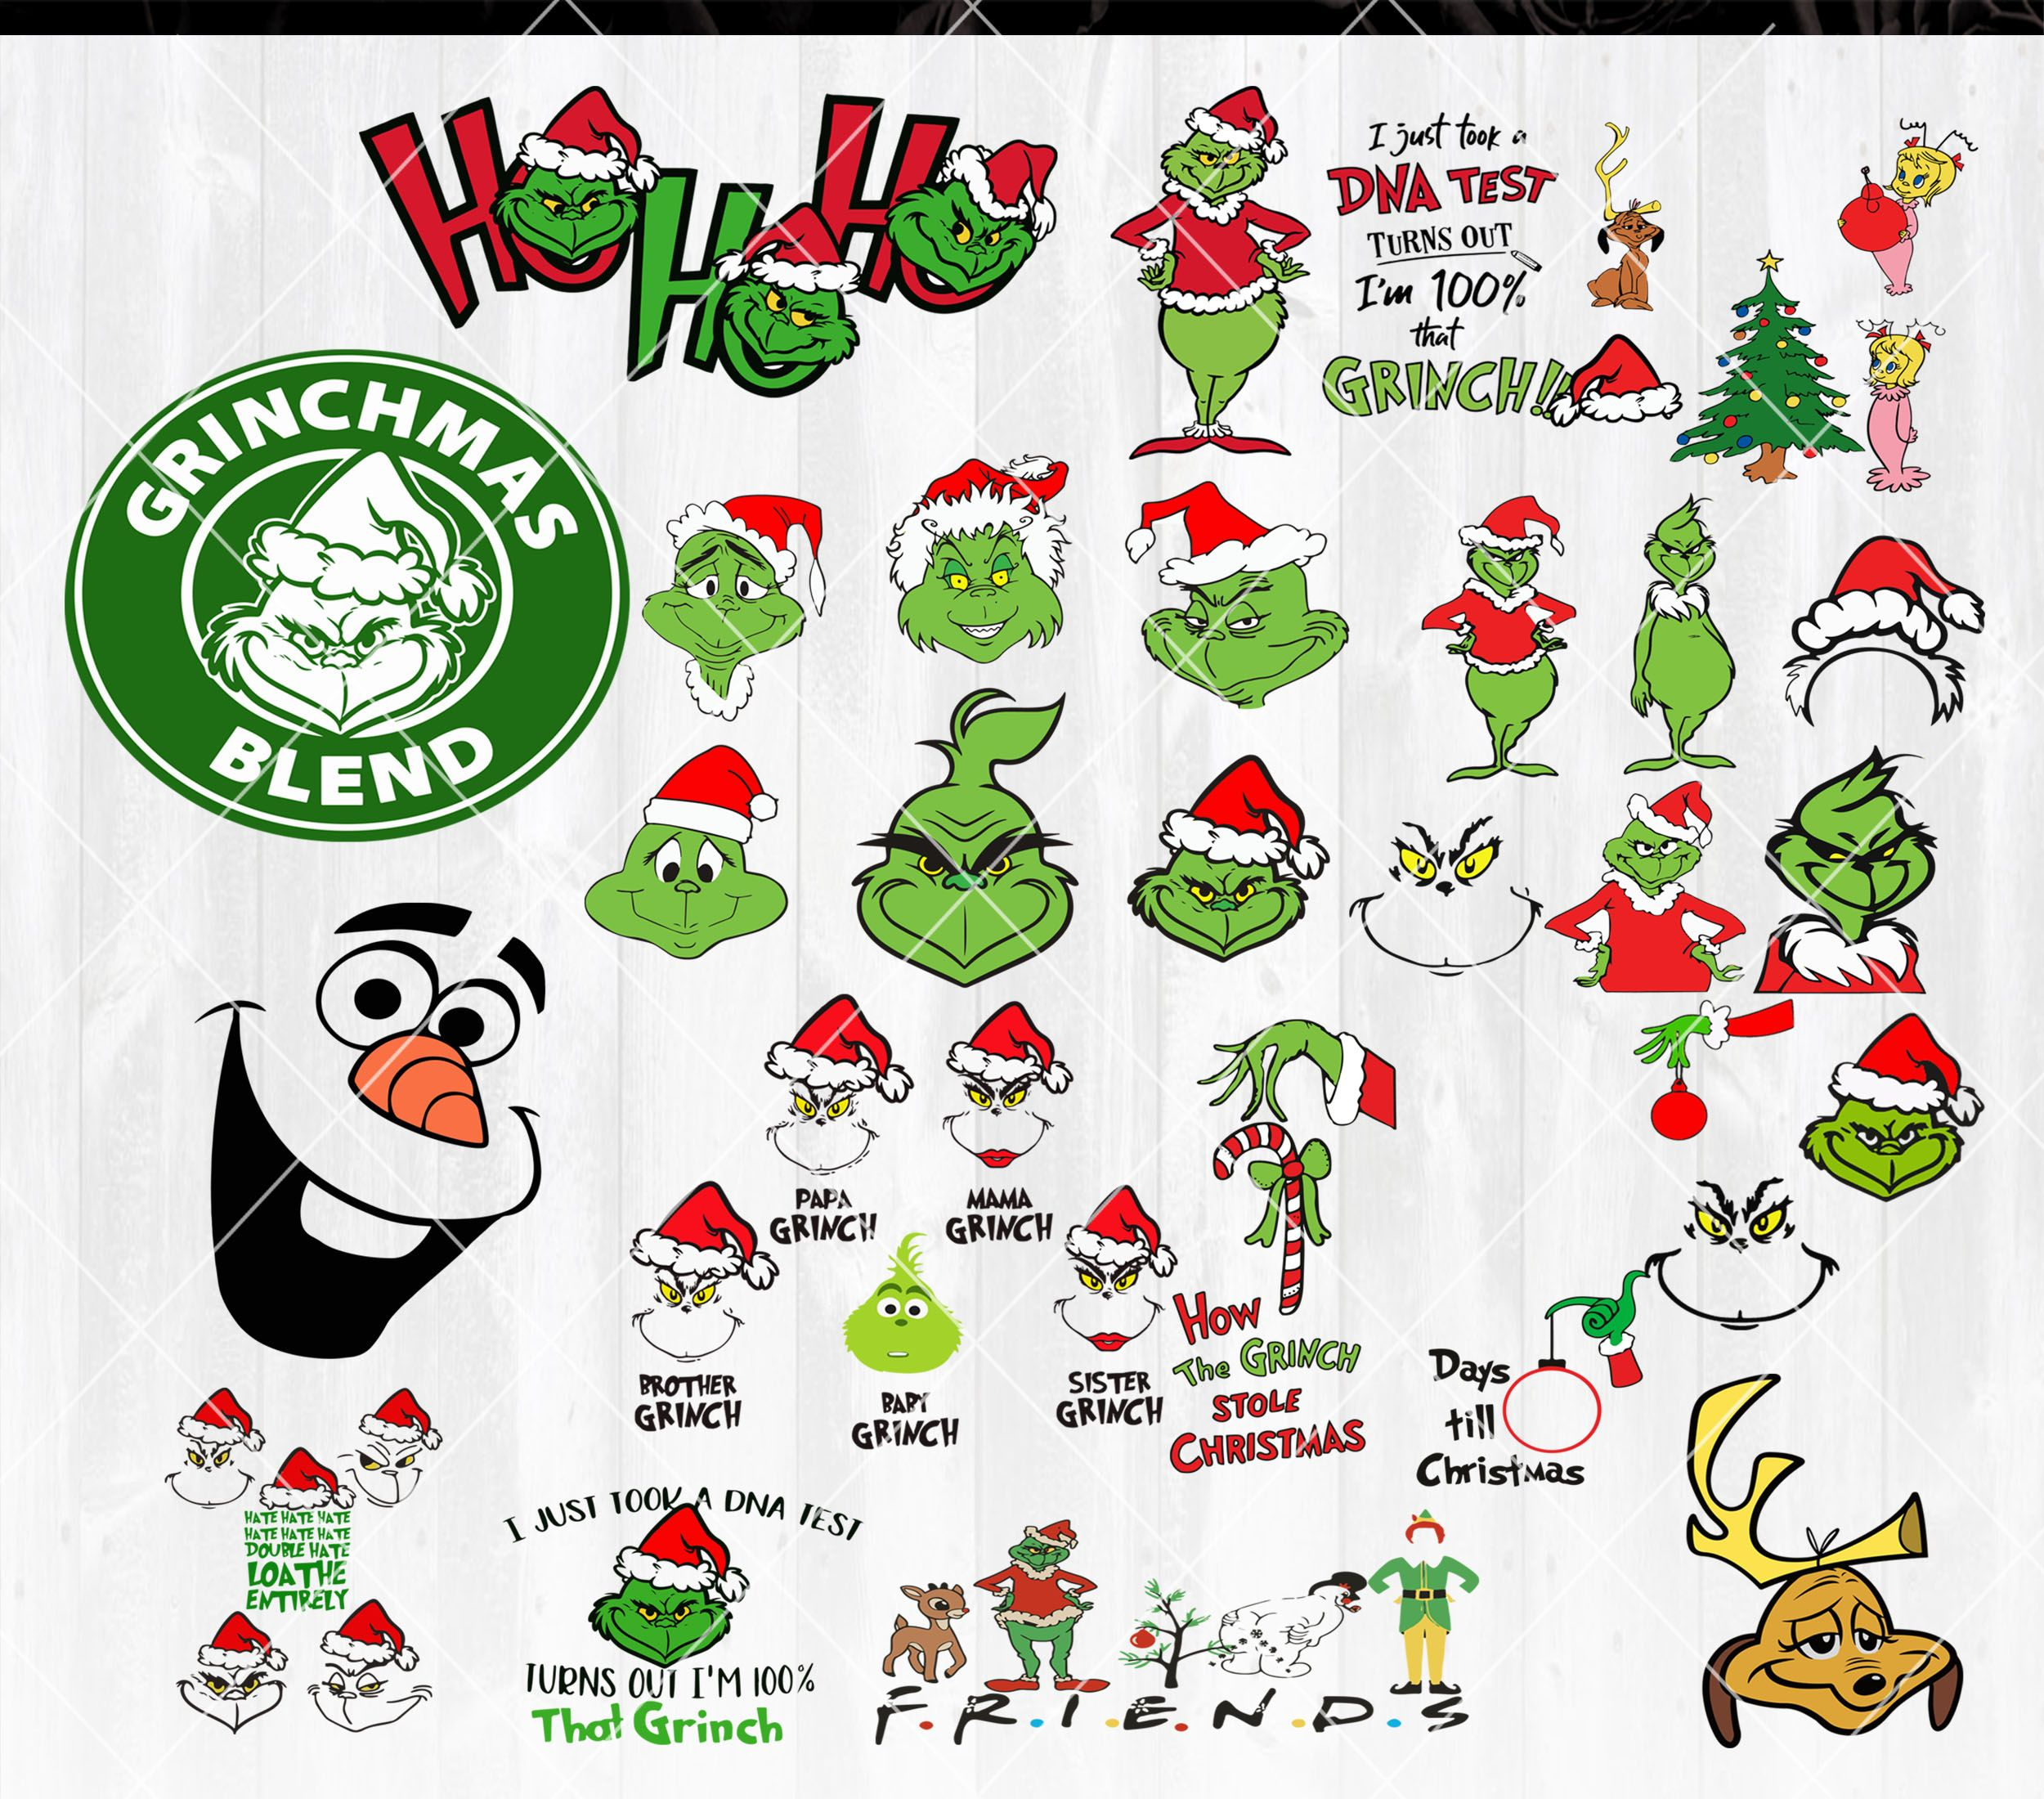 Grinch Hand SVG, Grinch Face SVG Bundle, Grinch svg files